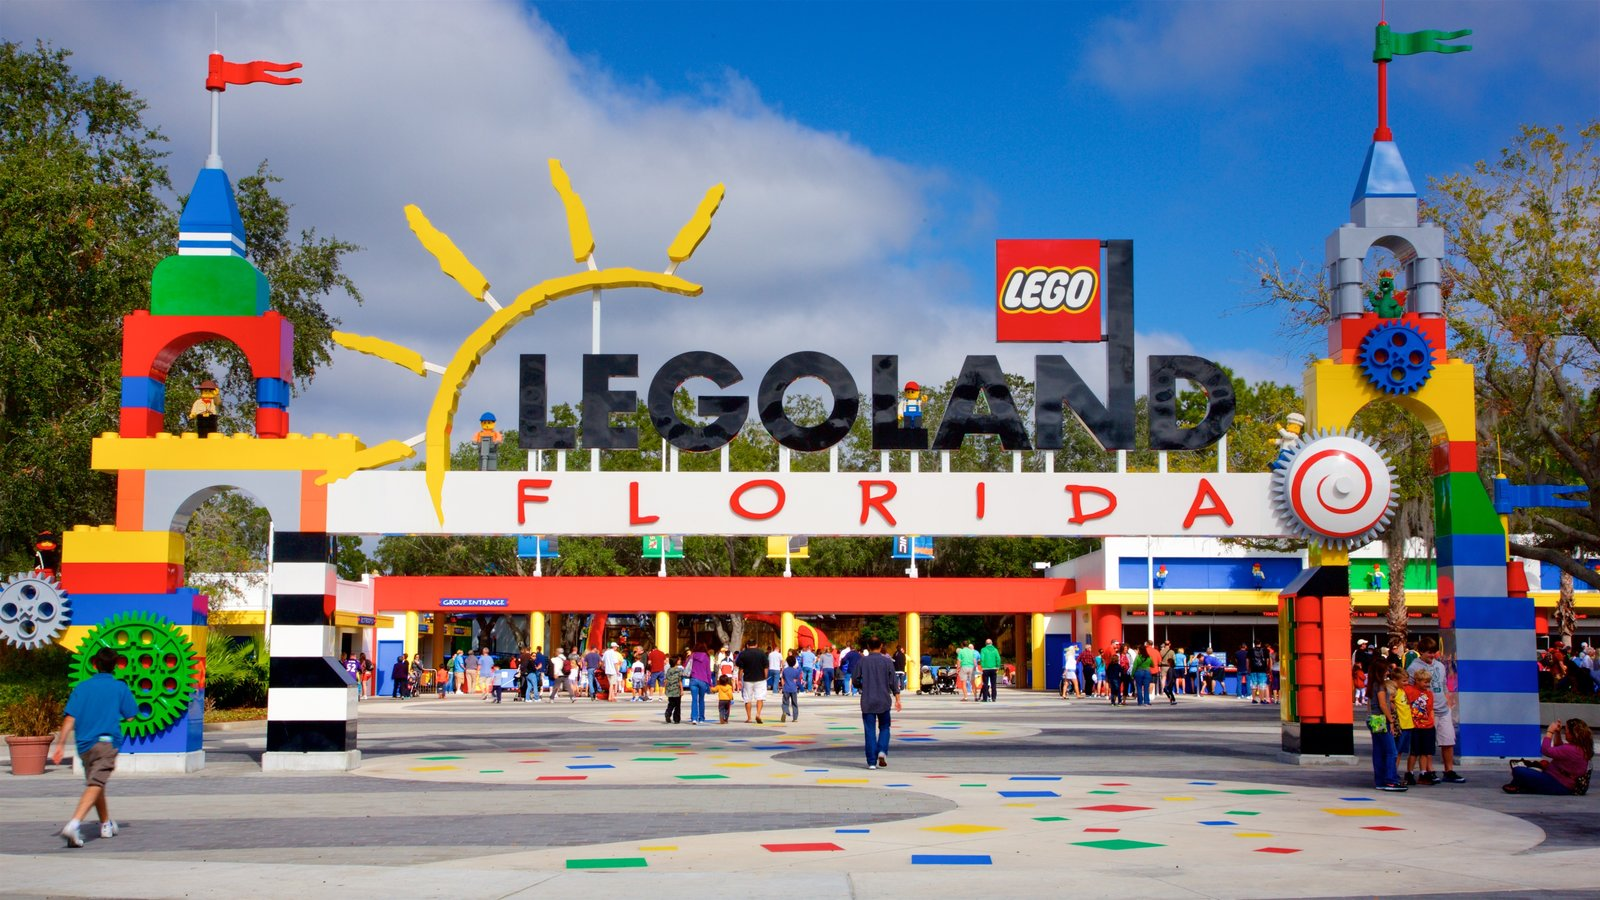 Legoland Florida showing signage and rides as well as a small group of people